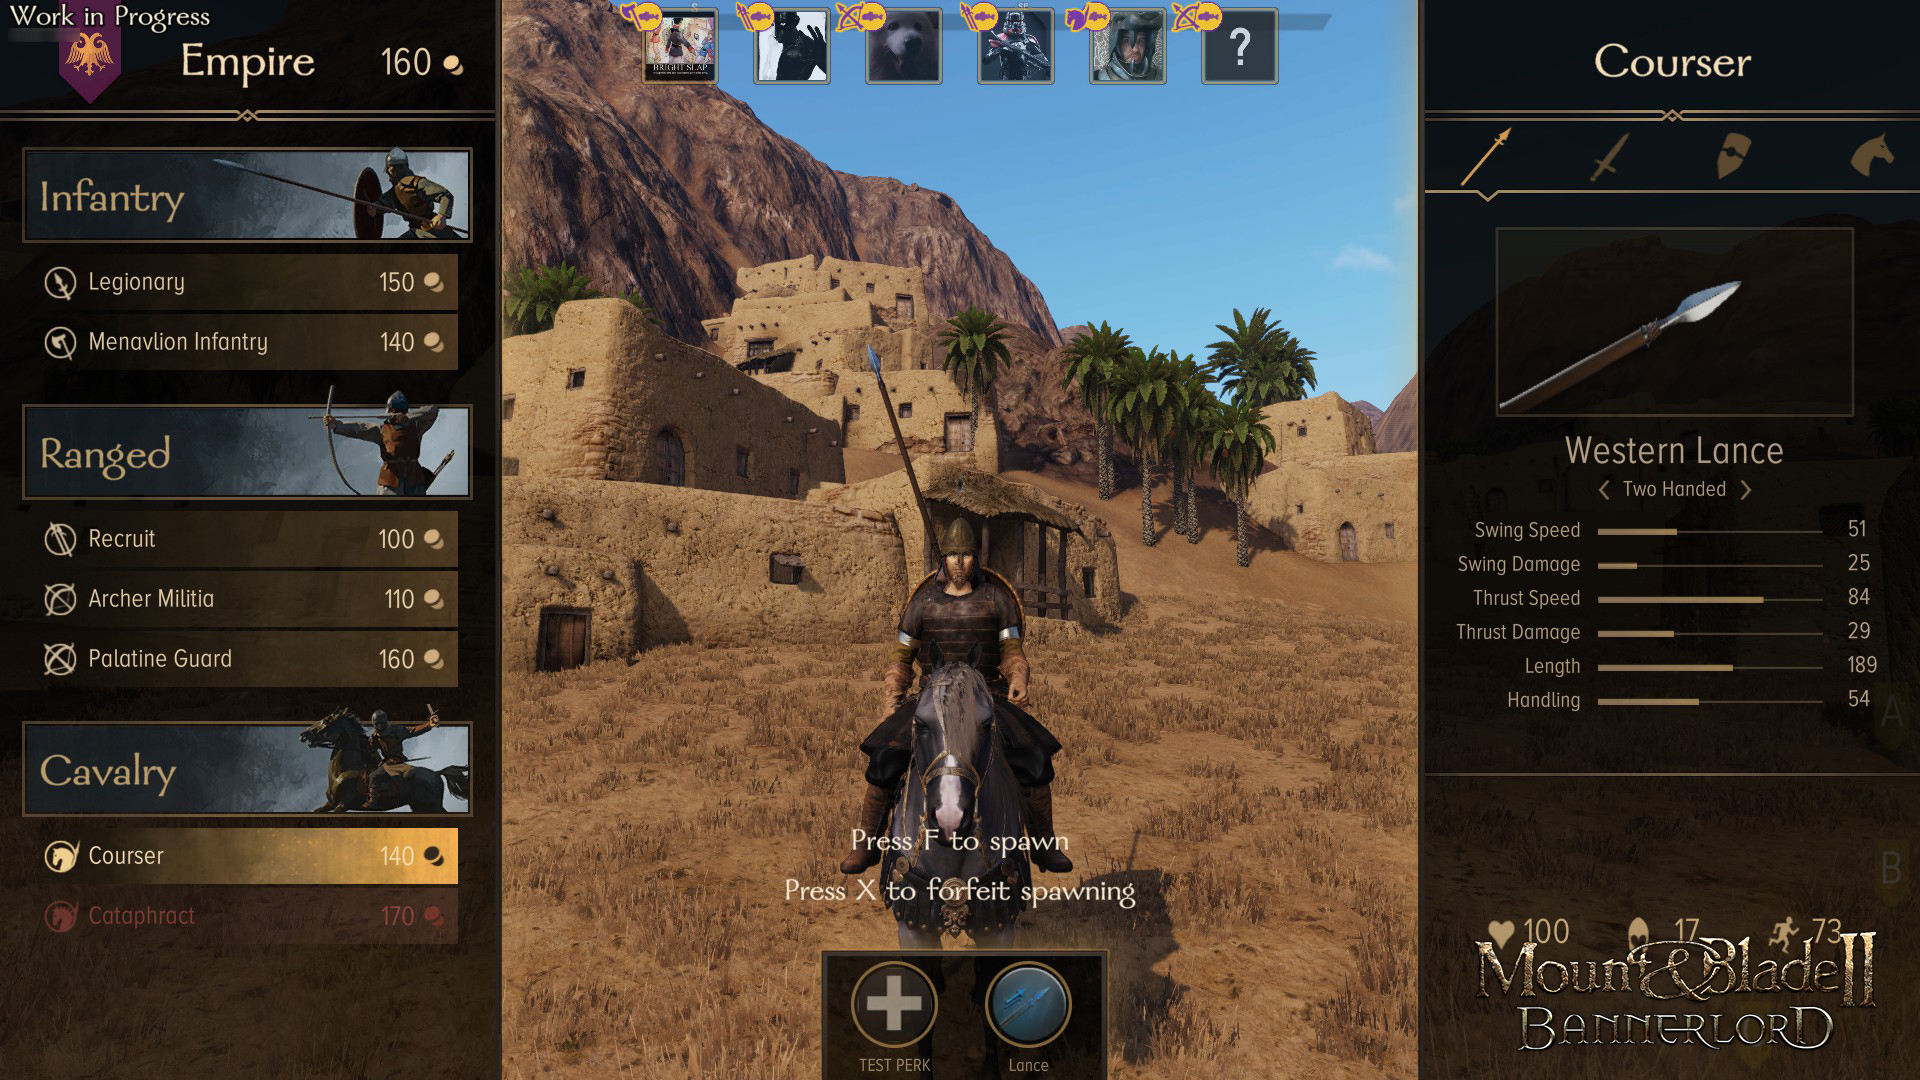 Mount And Blade 2 Bannerlord Developer Diary A Look At The Multiplayer Class System Player One